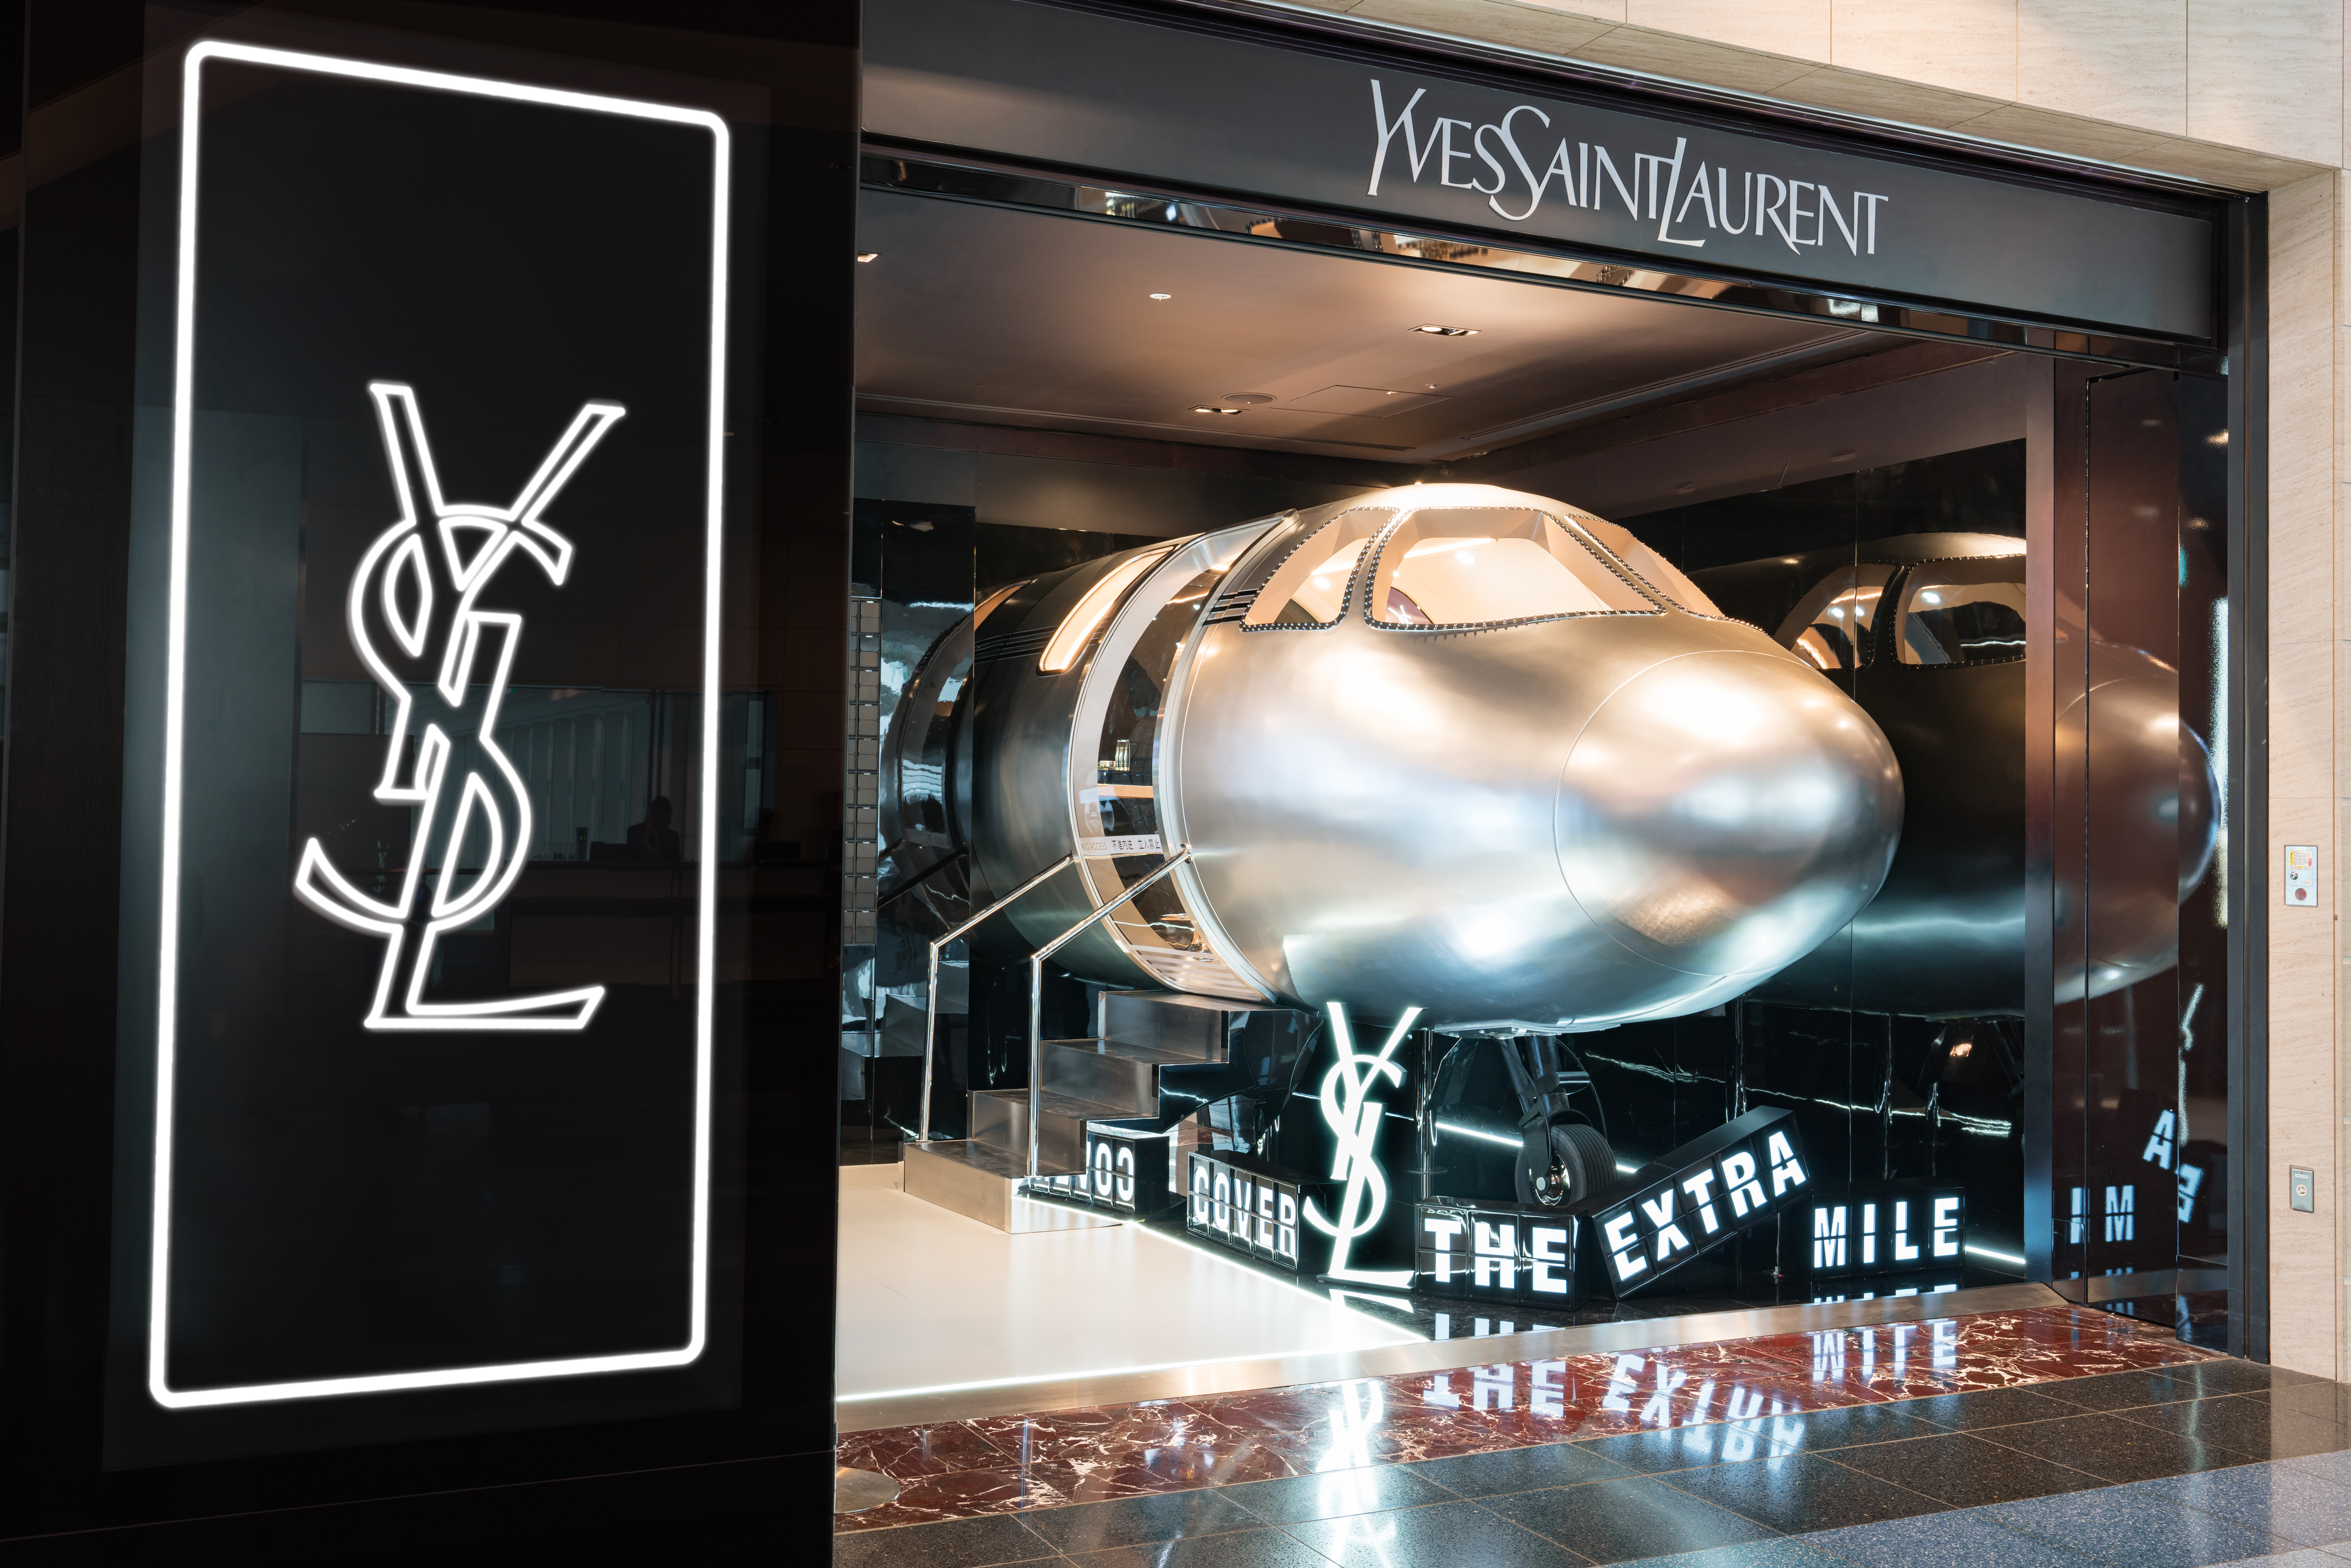 YSL Beauté Travel Retail Asia Pacific launches retailtainment experience in Haneda Airport